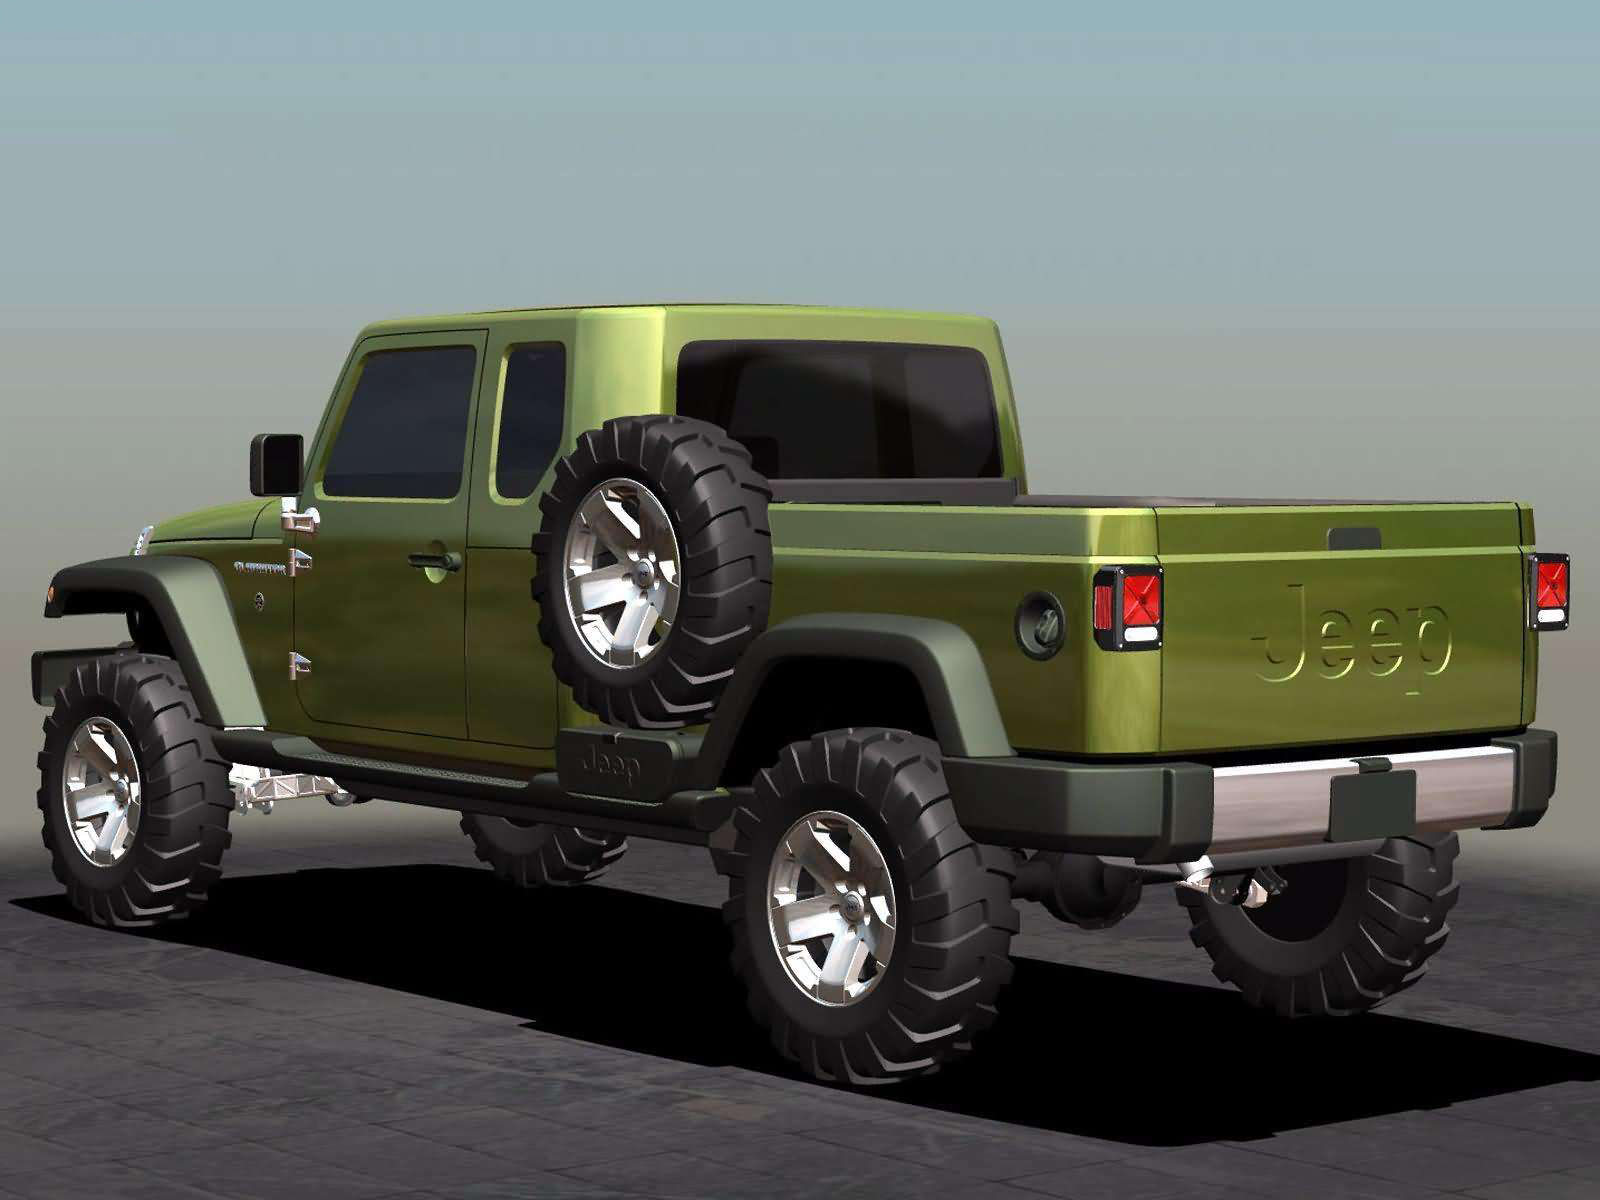 Jeep Models List >> 2005 JEEP Gladiator Concept pictures, review